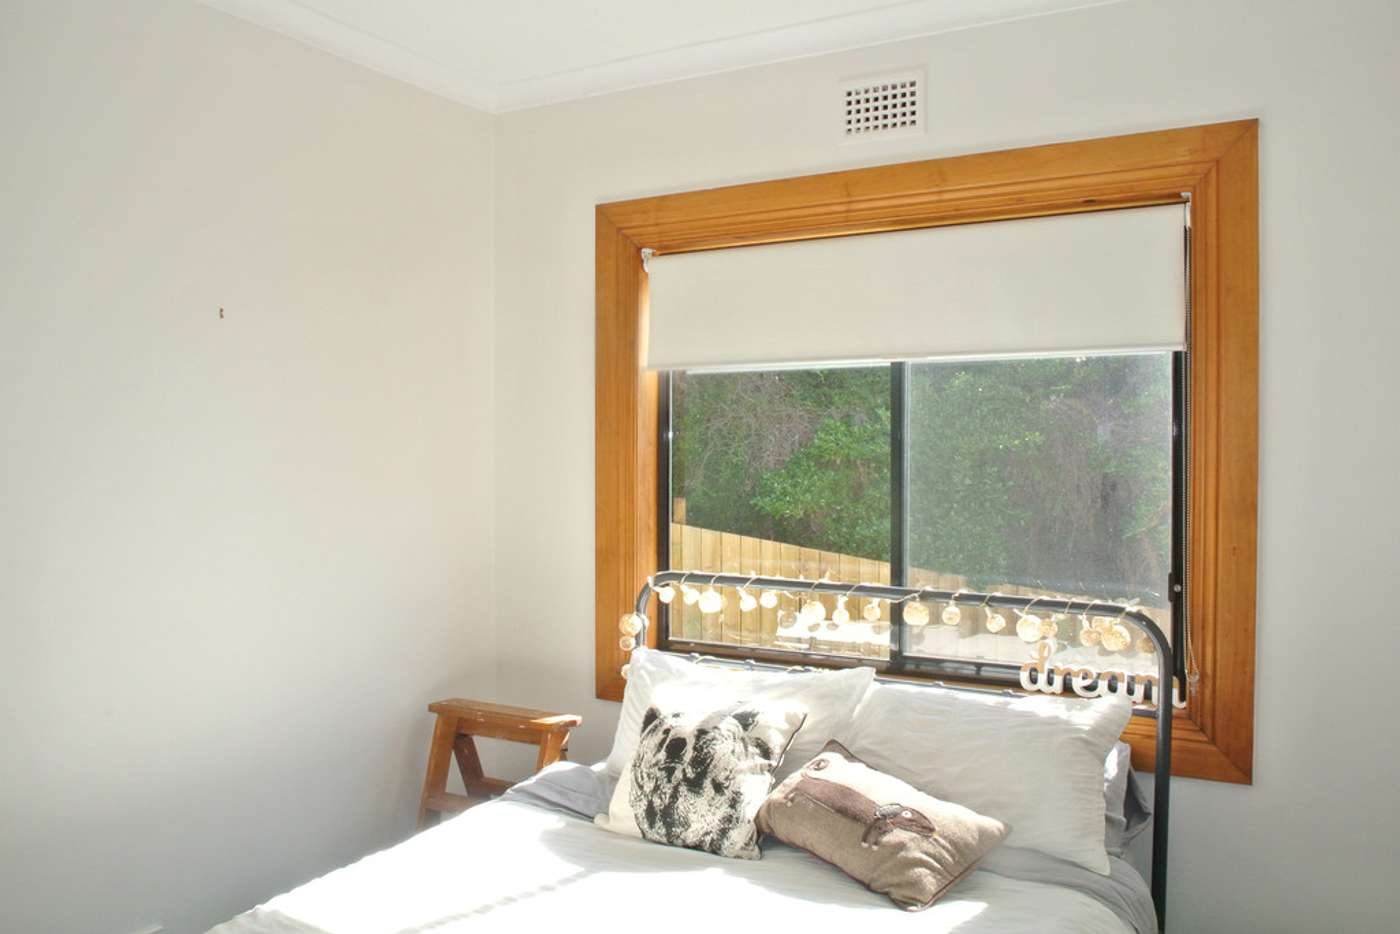 Seventh view of Homely house listing, 13 Wattle Avenue, Emu Heights TAS 7320